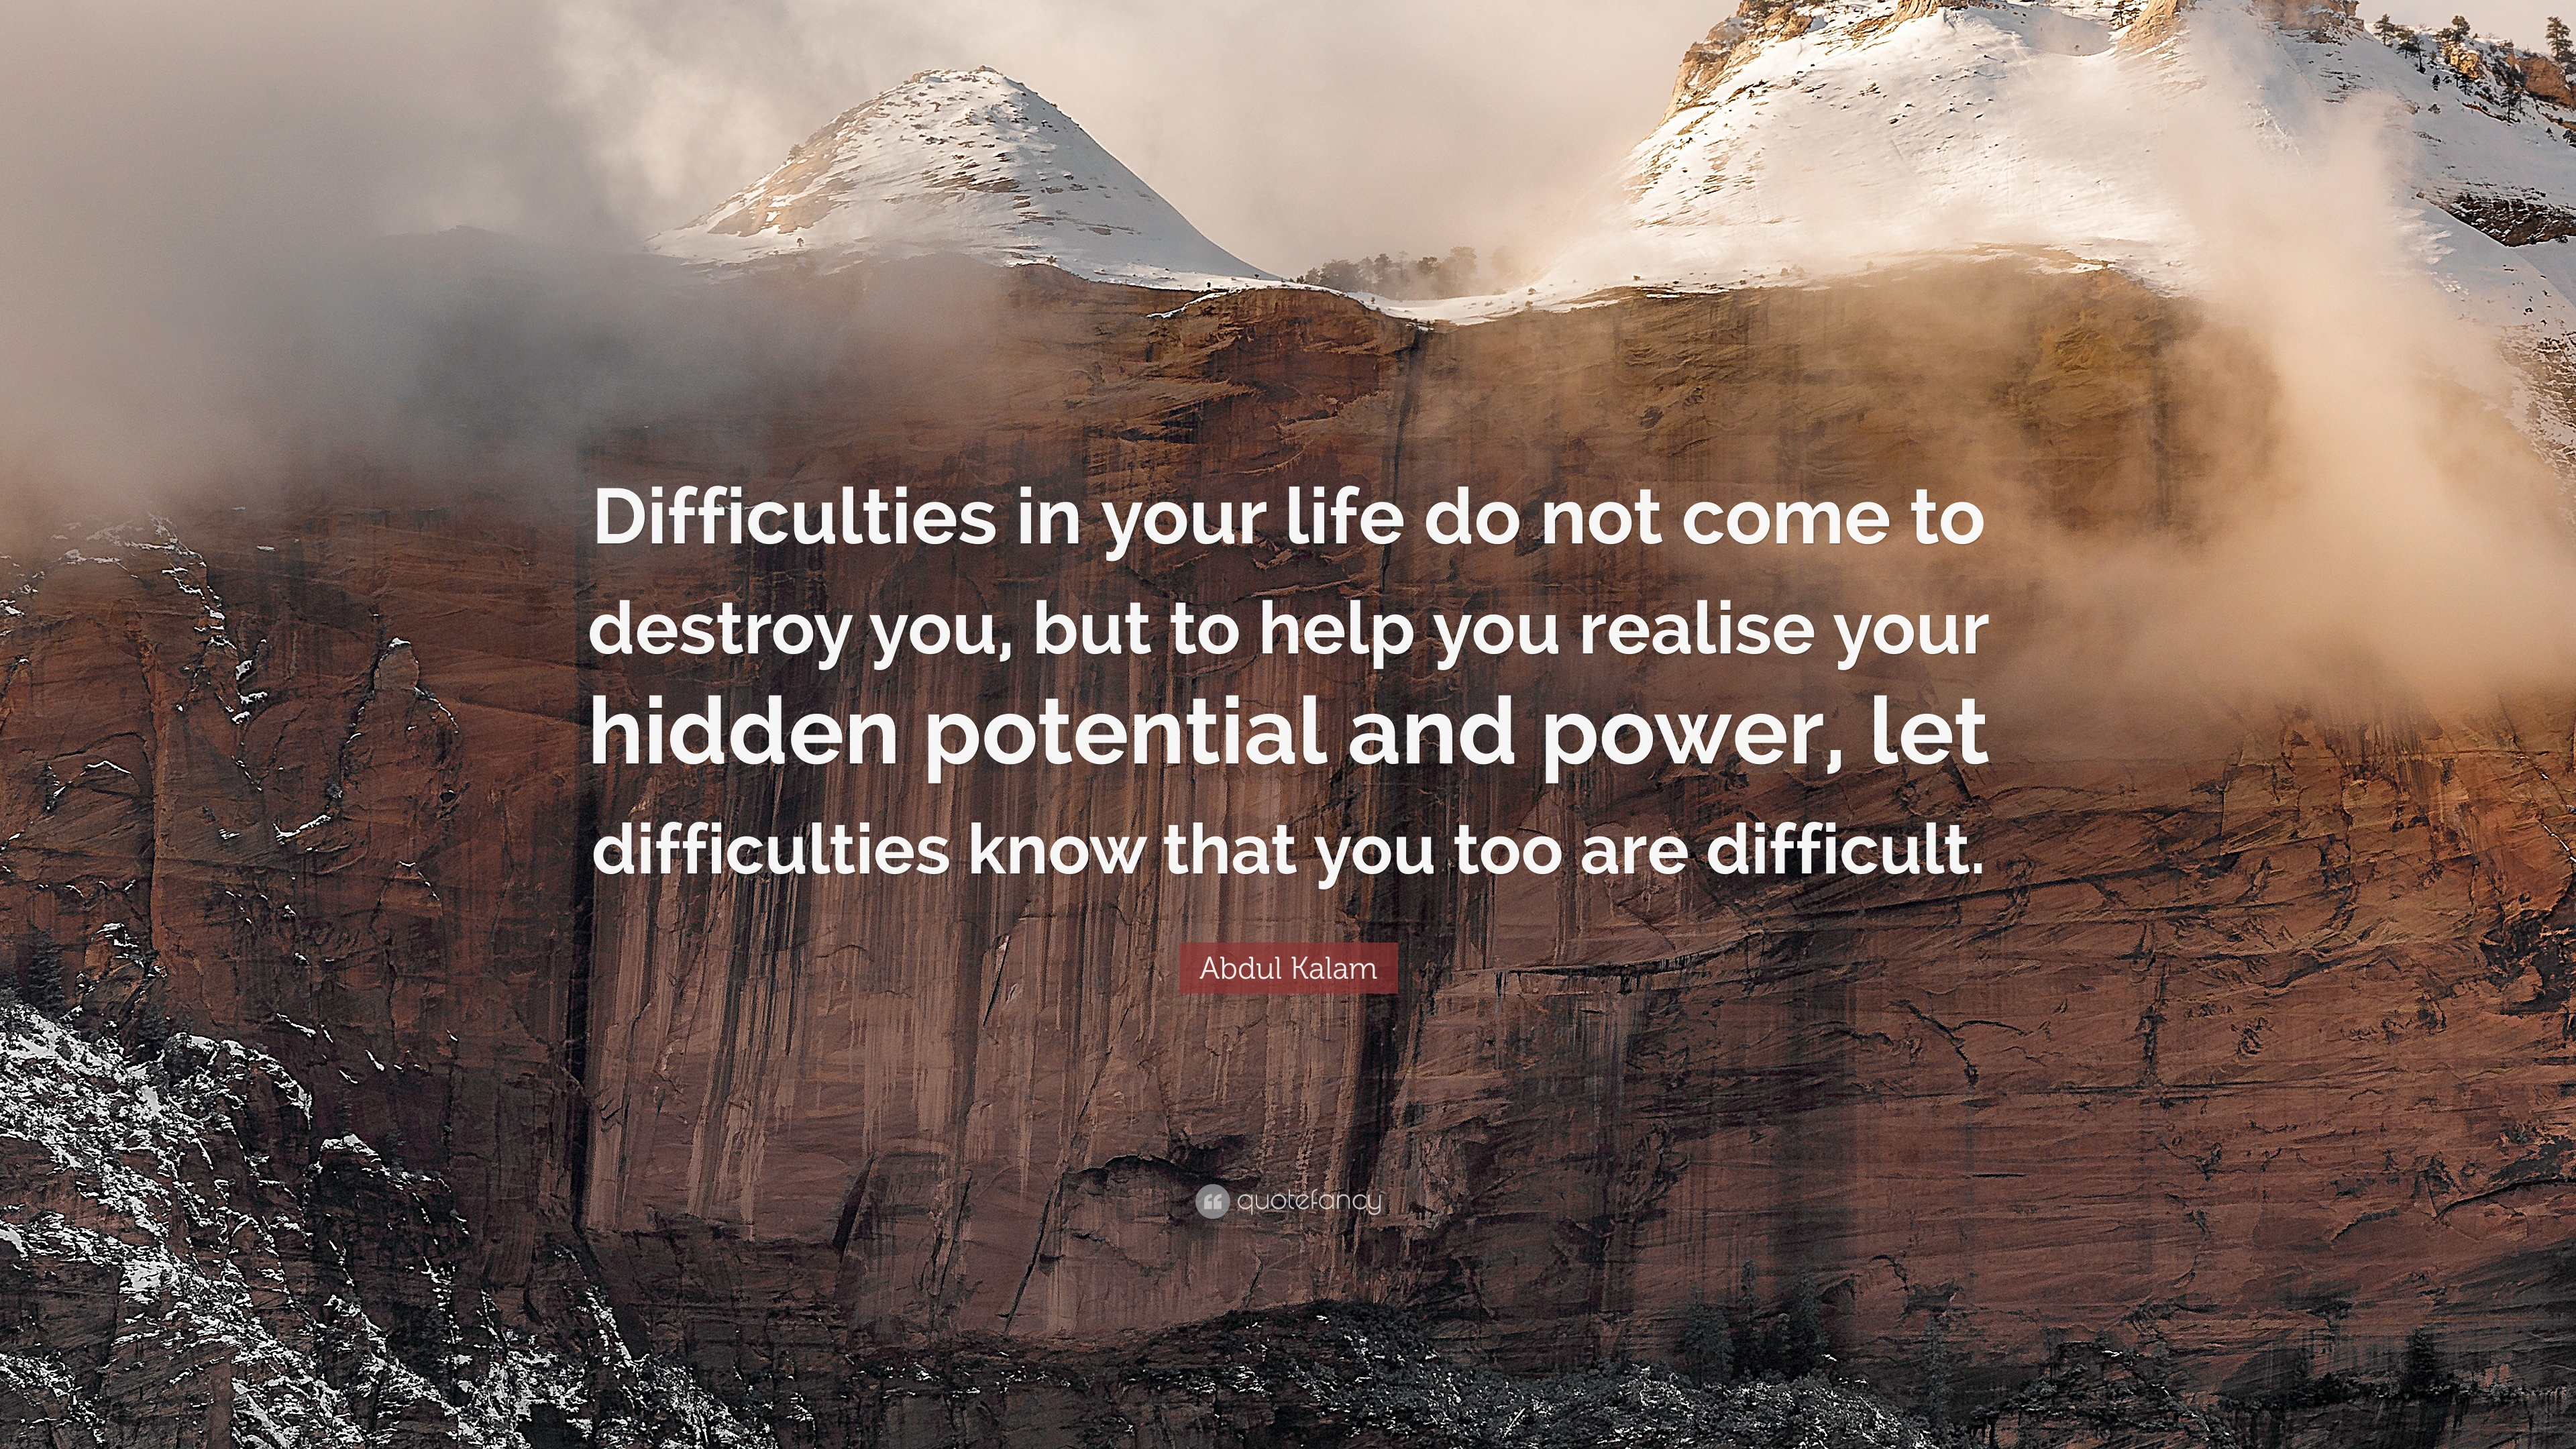 Napoleon Hill Quotes Wallpaper Abdul Kalam Quote Difficulties In Your Life Do Not Come